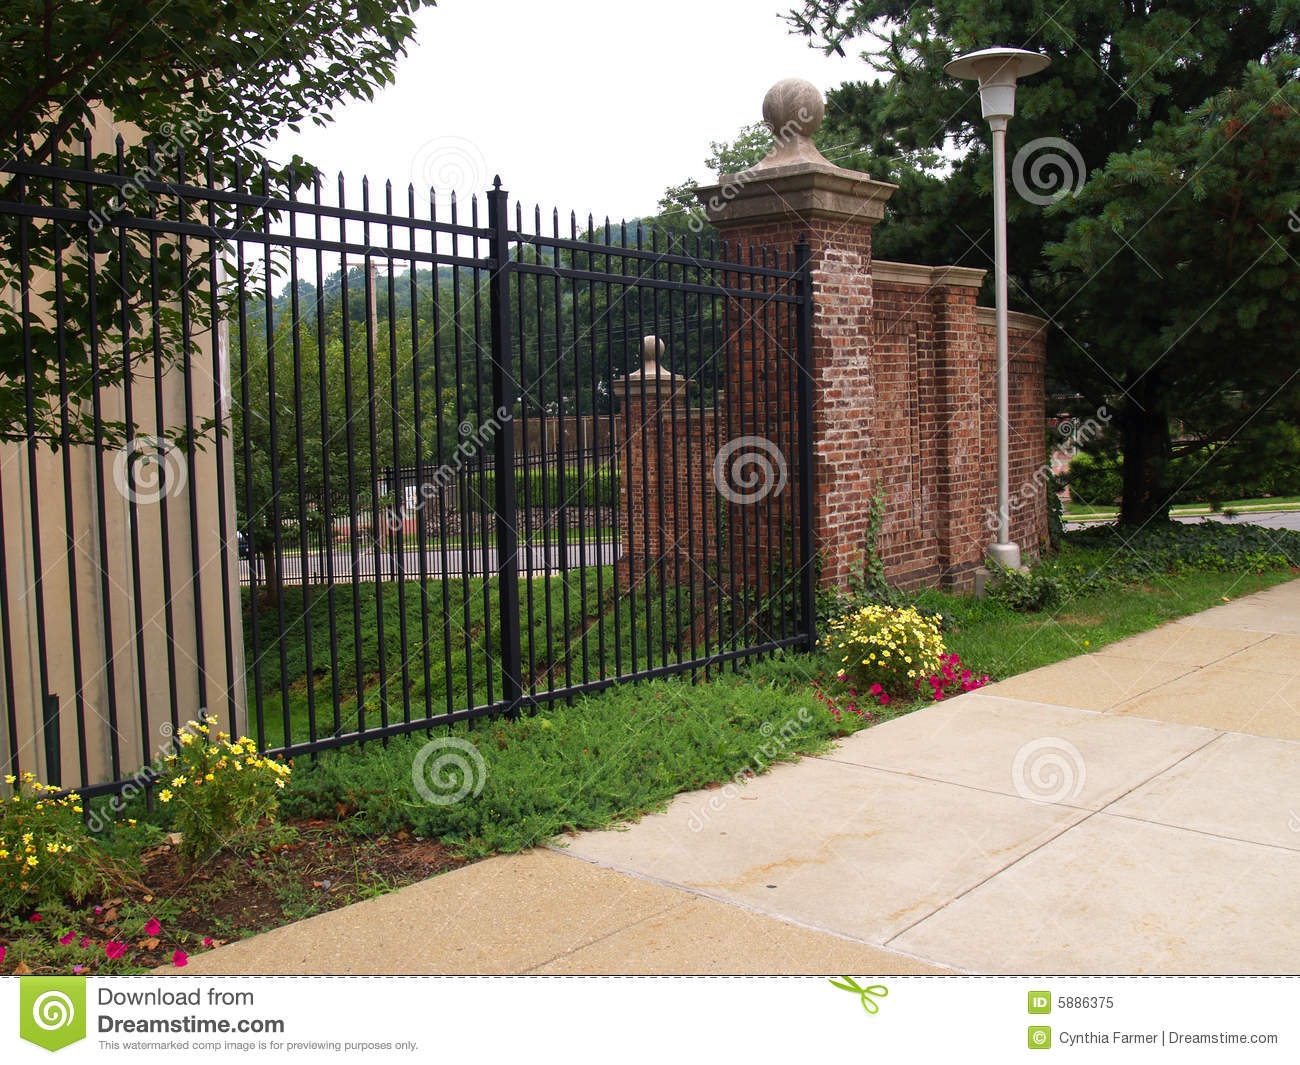 85 070 Black Fence Photos Free Royalty Free Stock Photos From Dreamstime